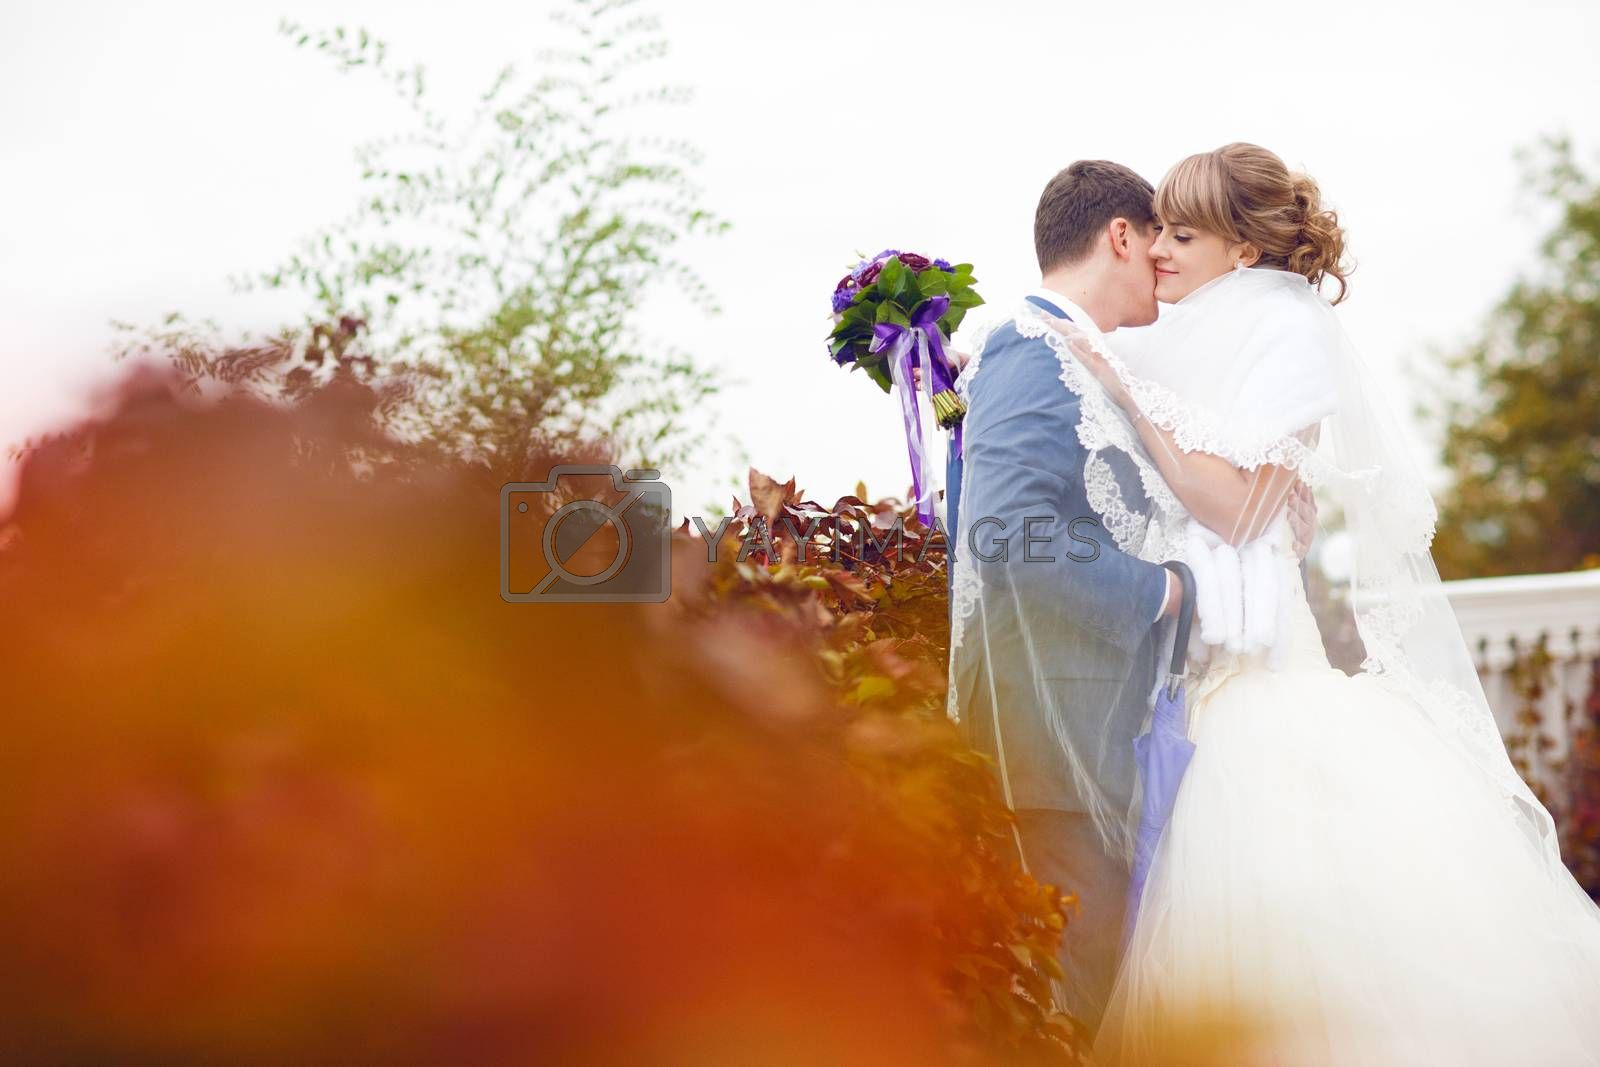 tenderness of the bride and groom